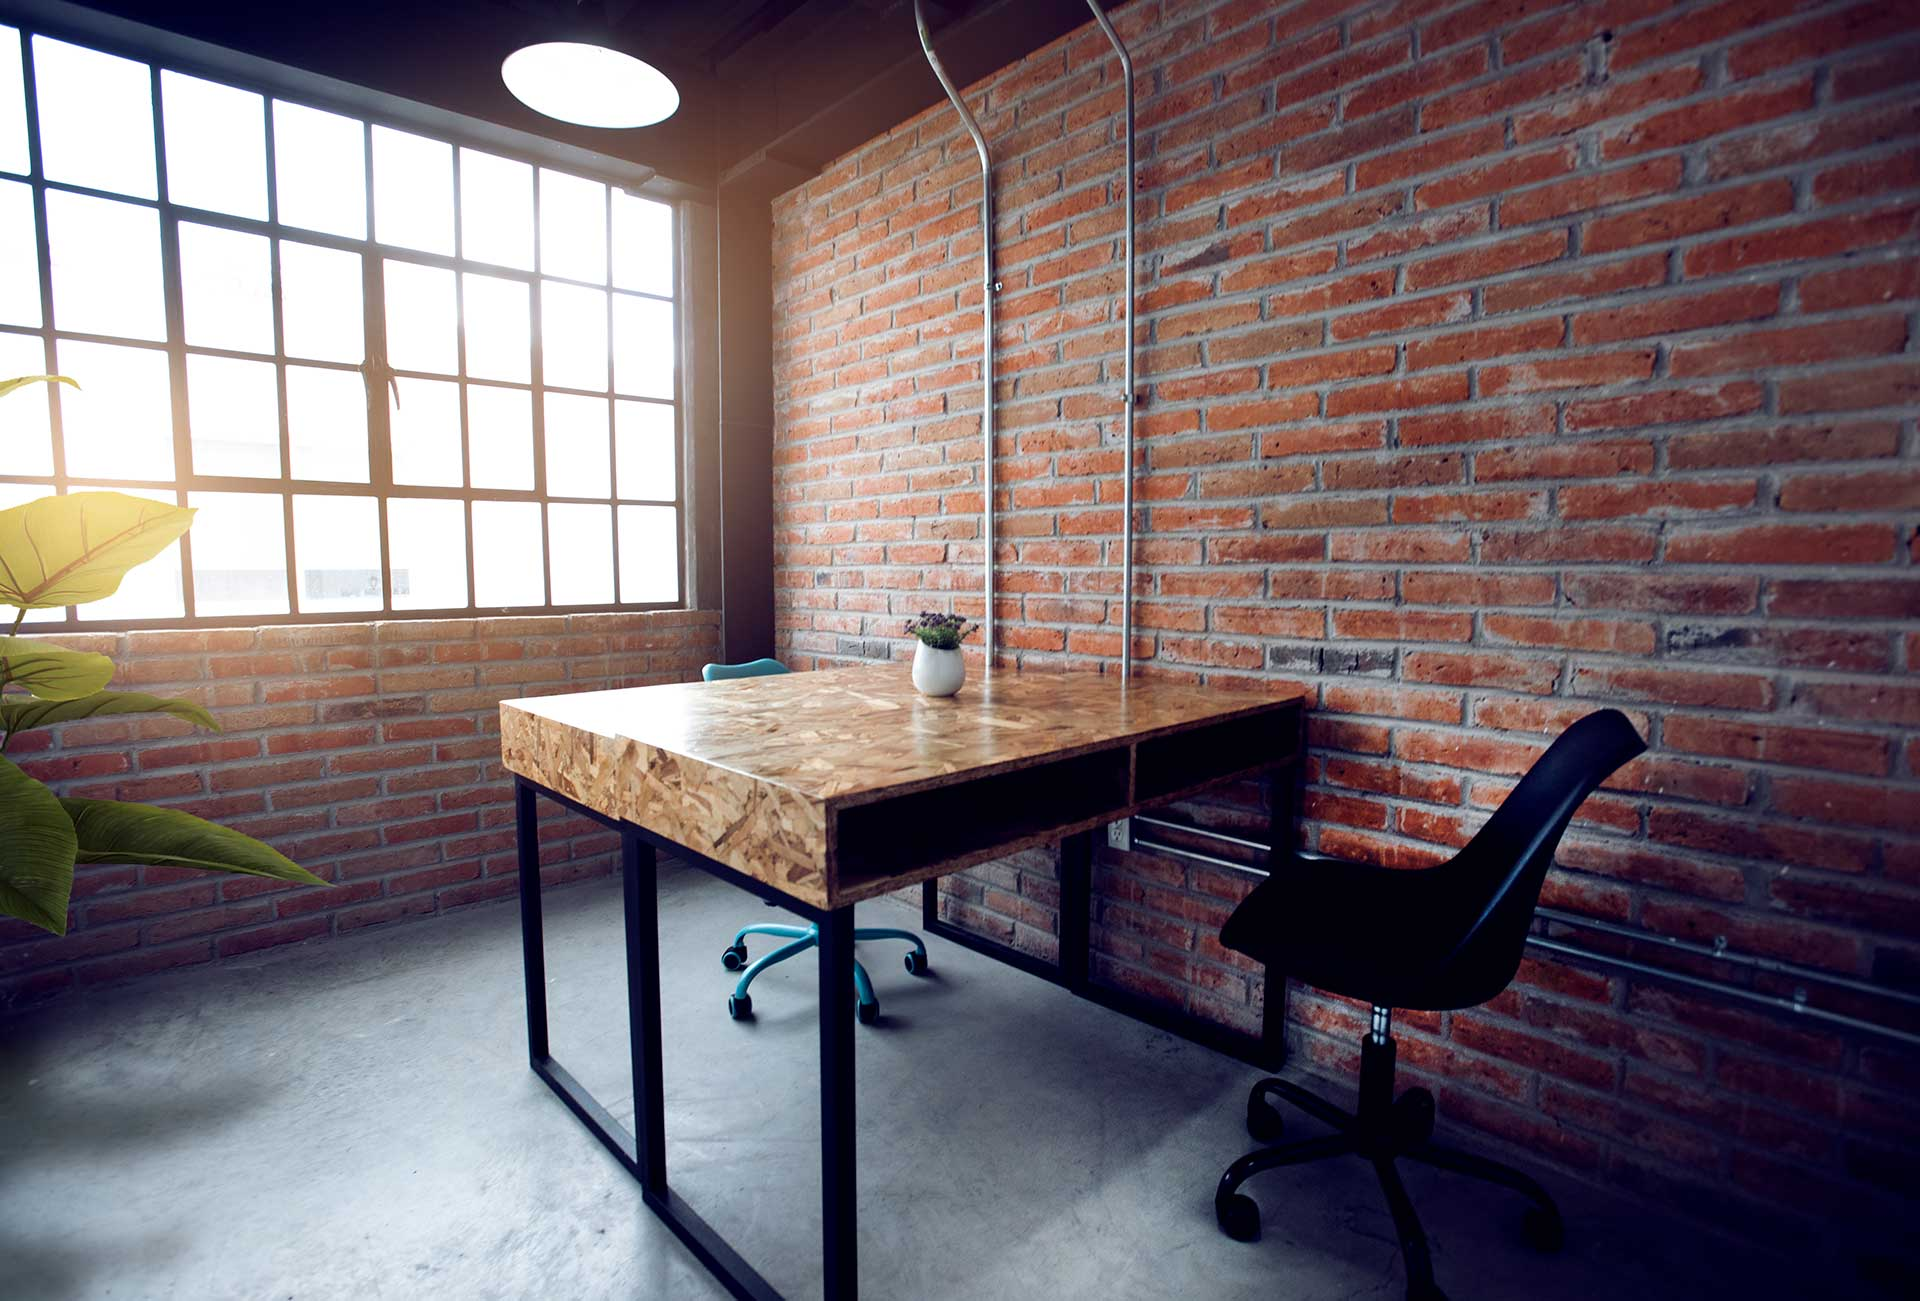 Oficinas privadas, workspace